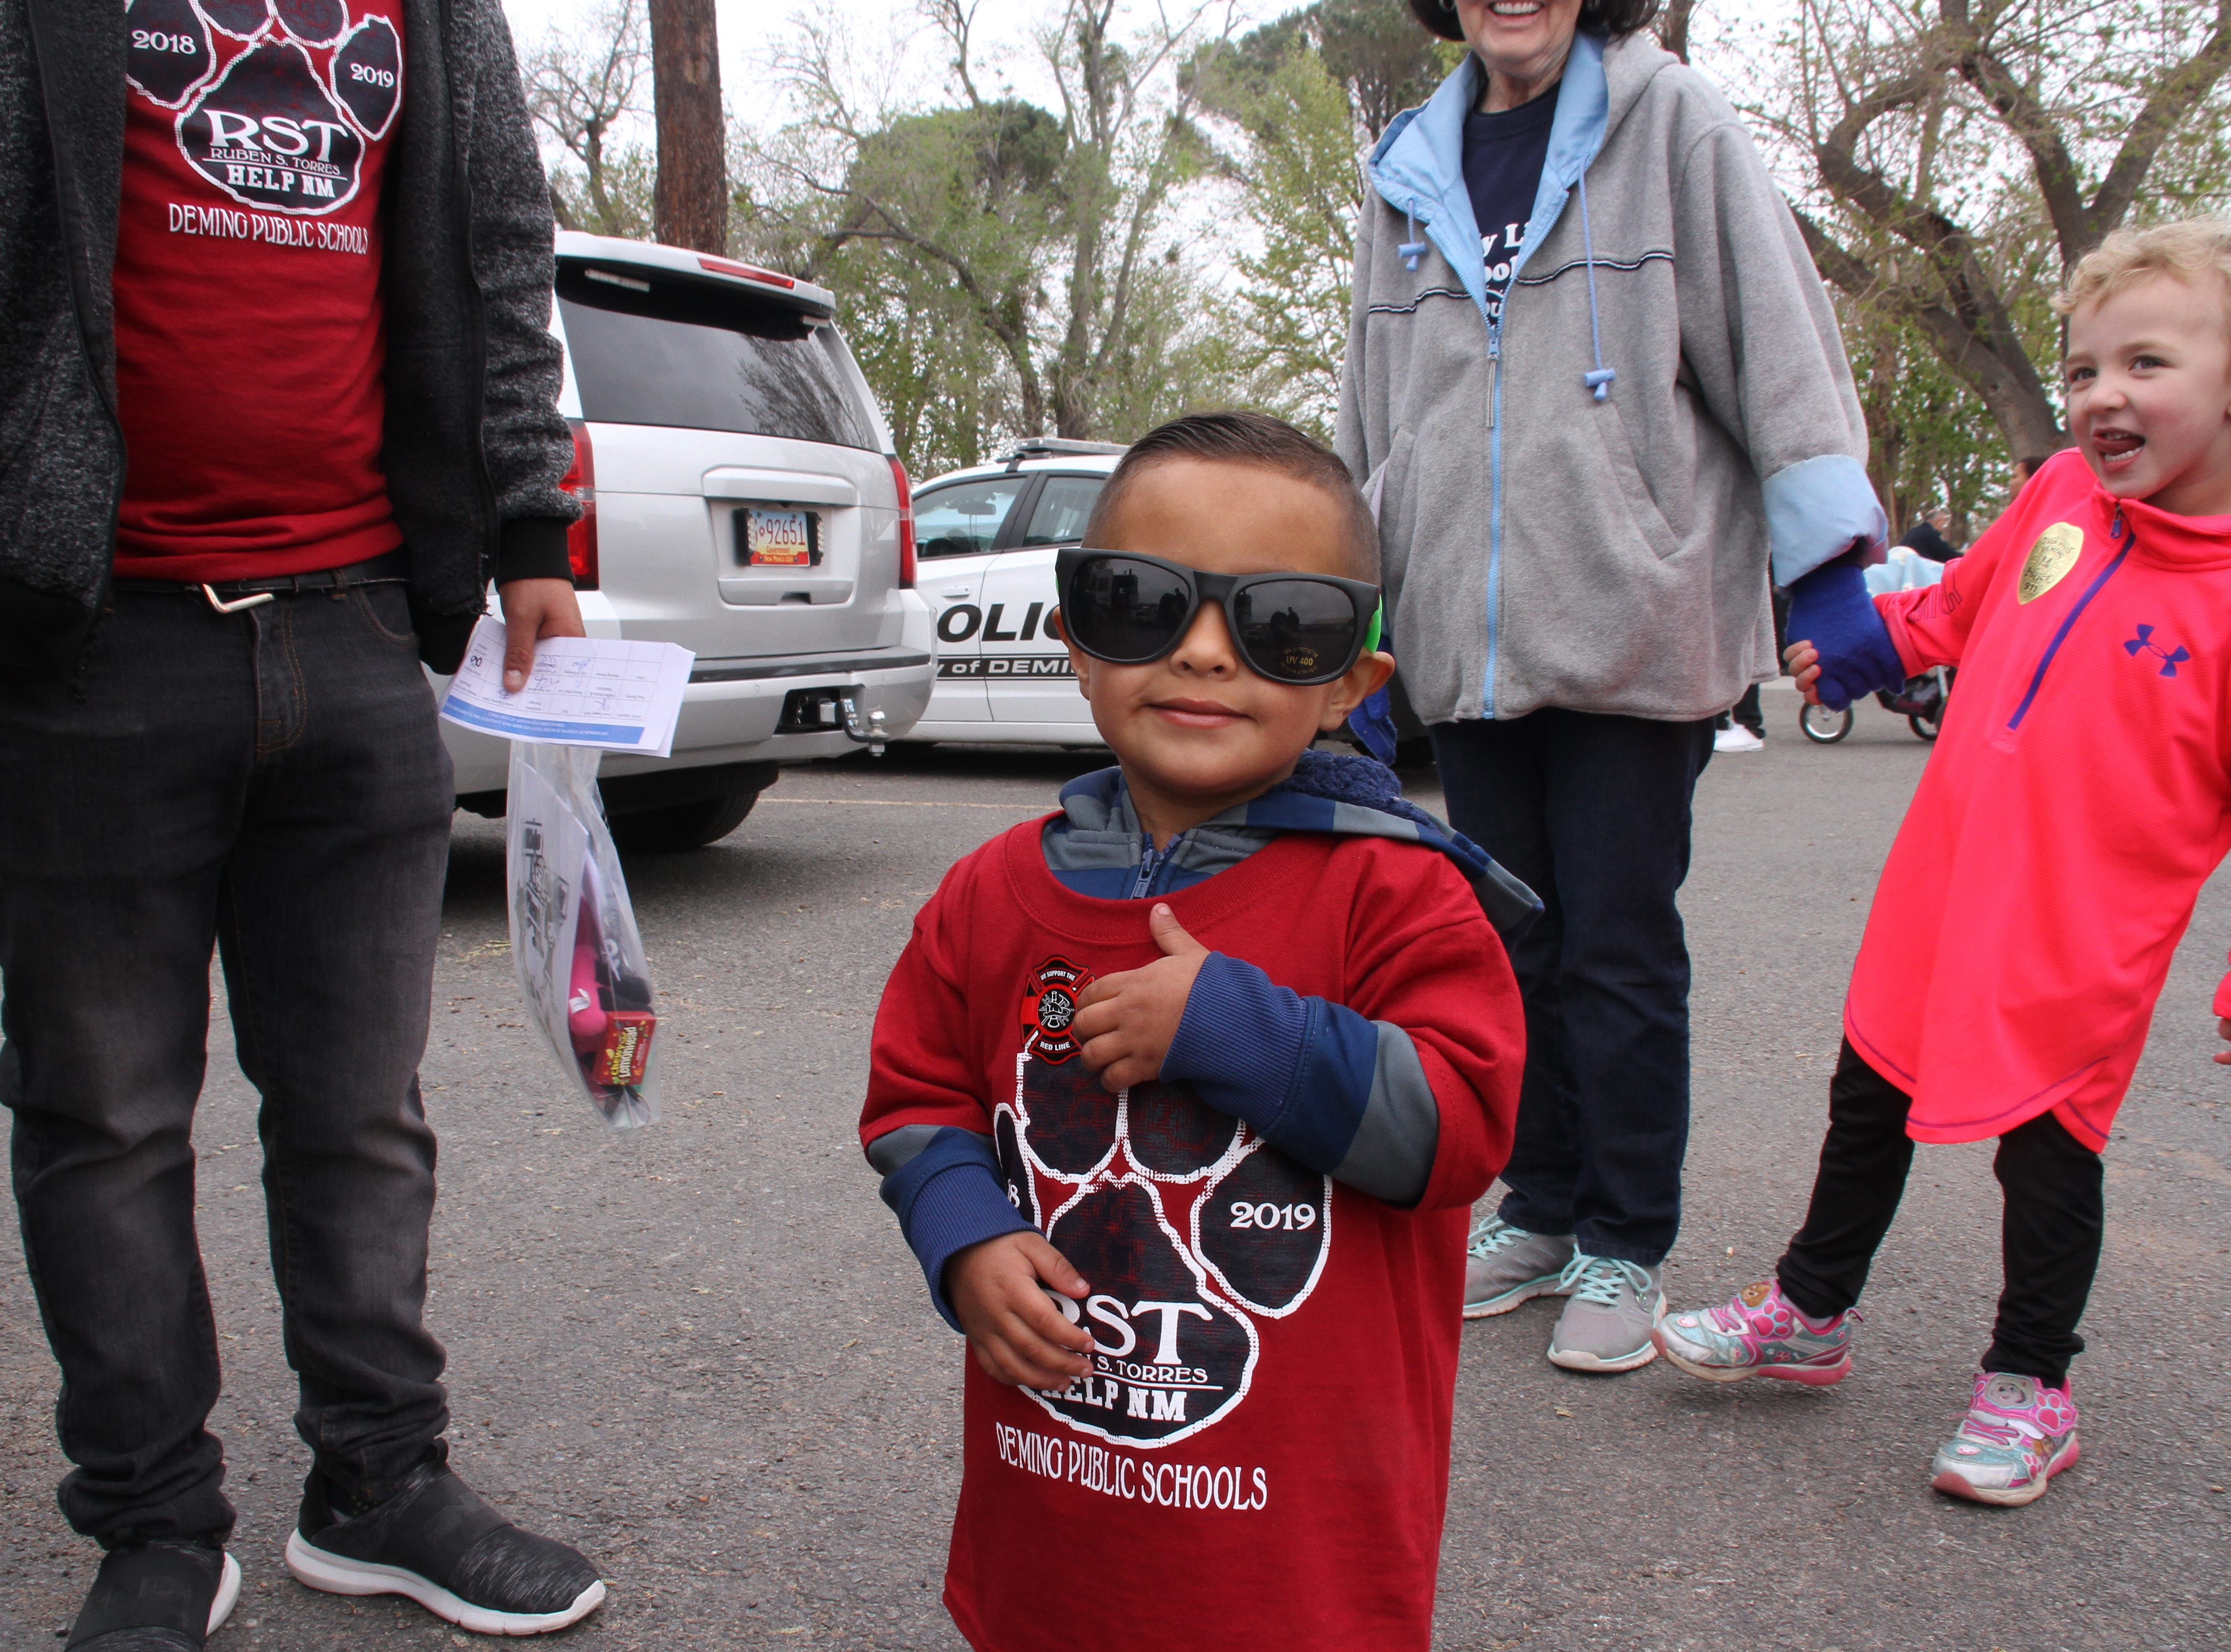 Three-year-old Ezequiel Peña looking cools with some over-sized sunglasses and a sticker badge.